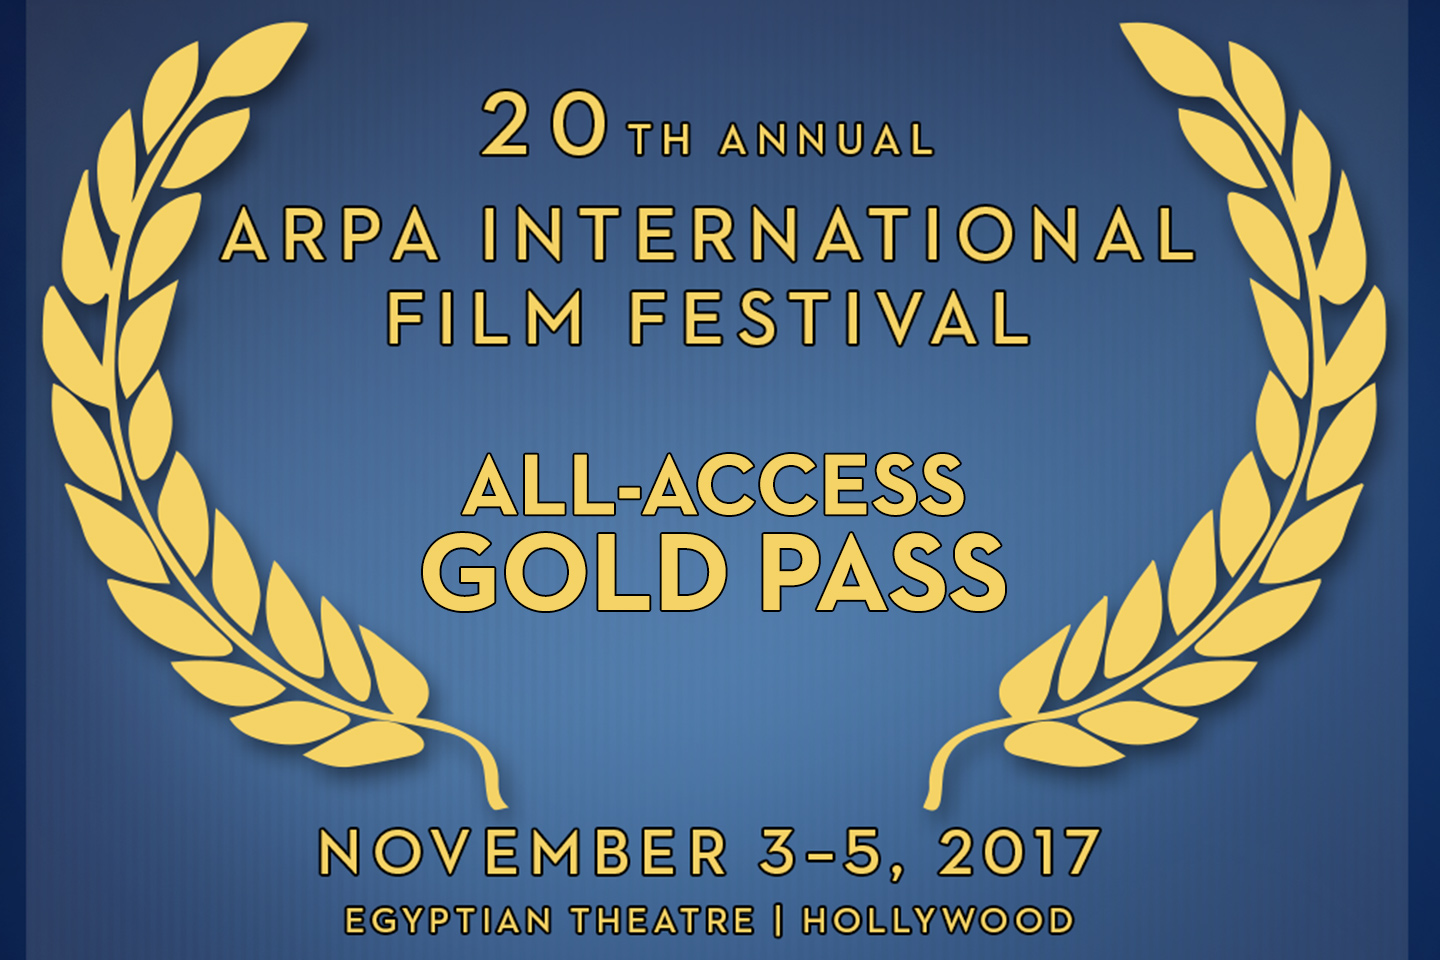 All-Access Festival Gold Pass – 2017 Arpa IFF